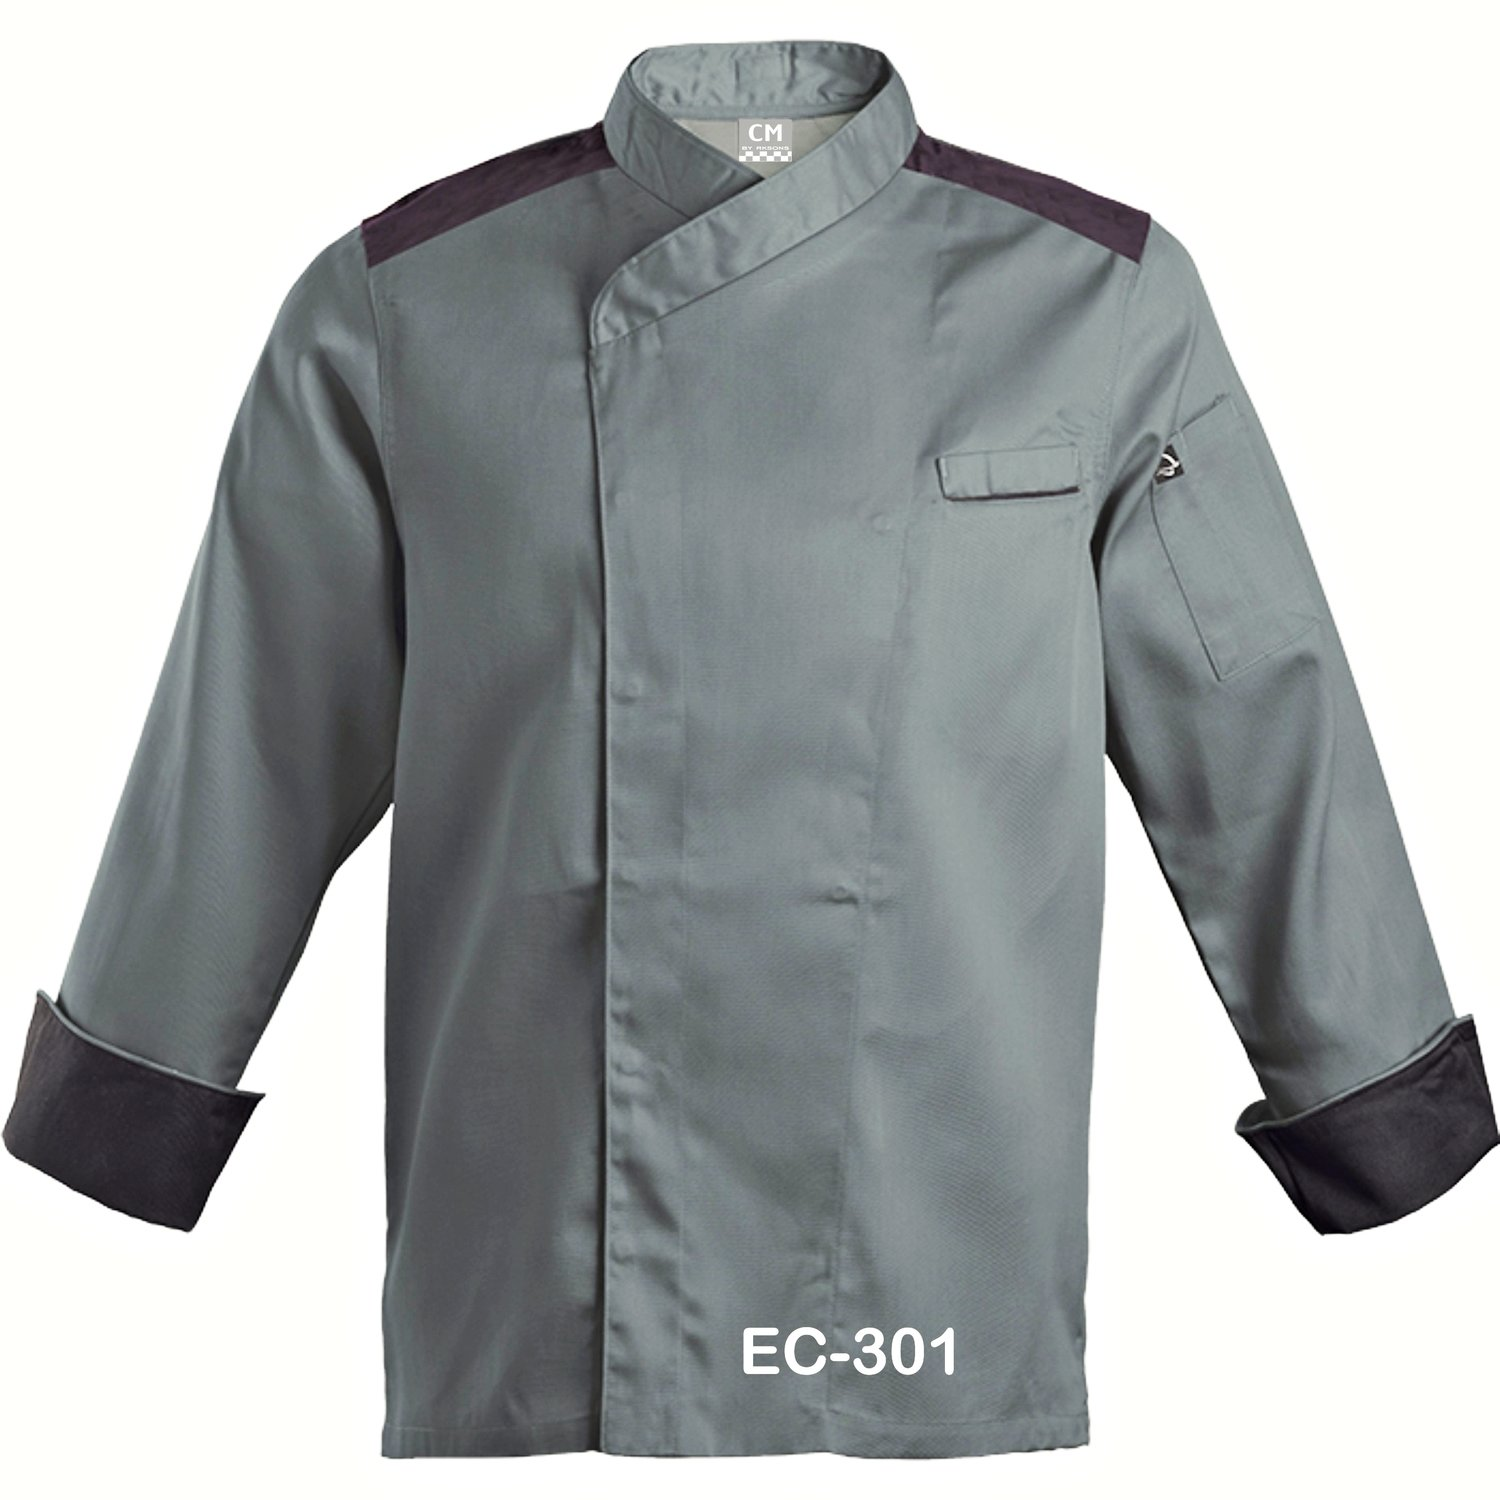 EC301 EXECUTIVE CHEF COAT